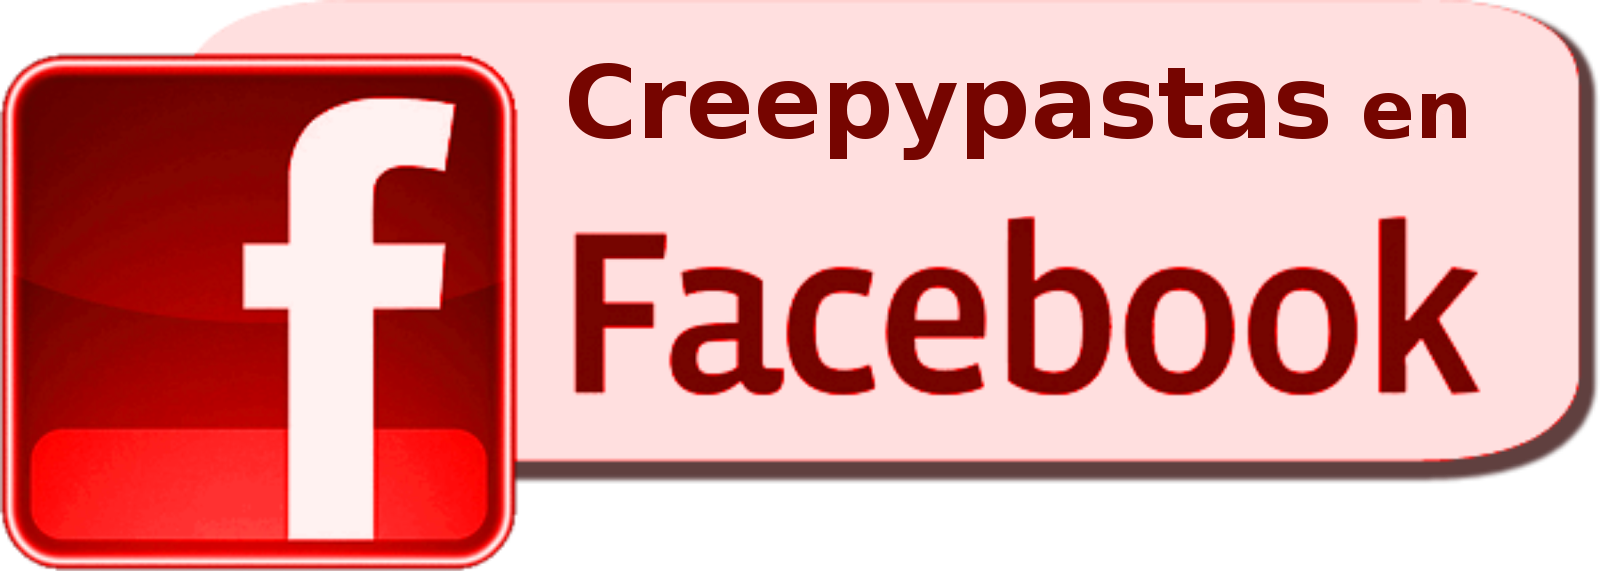 Creepypastas en Facebook